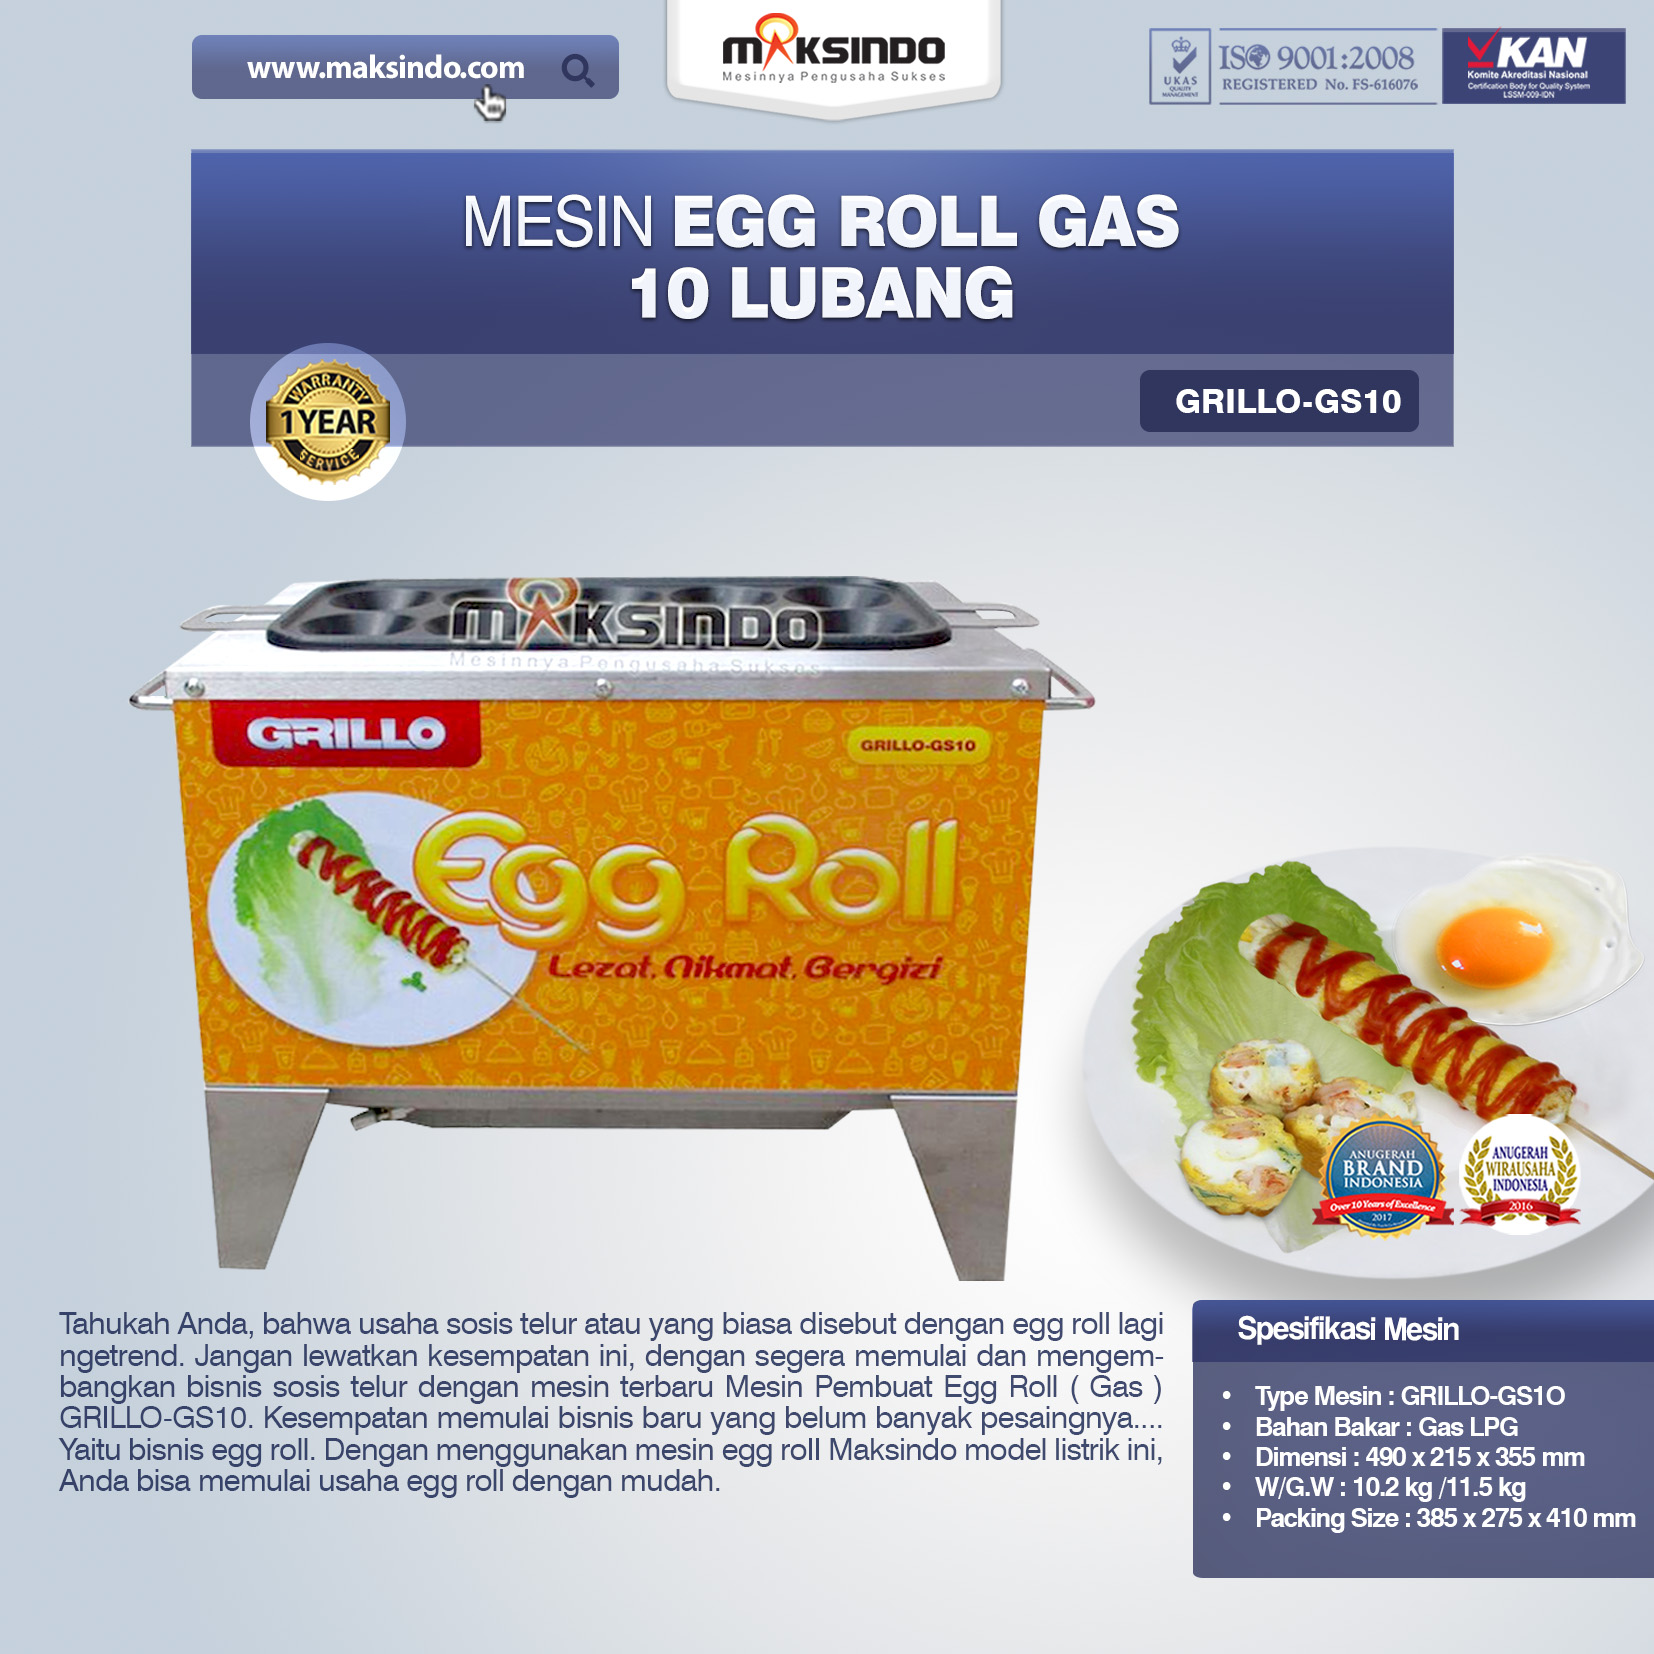 Jual Egg Roll Gas 10 Lubang GRILLO-GS10 di Medan